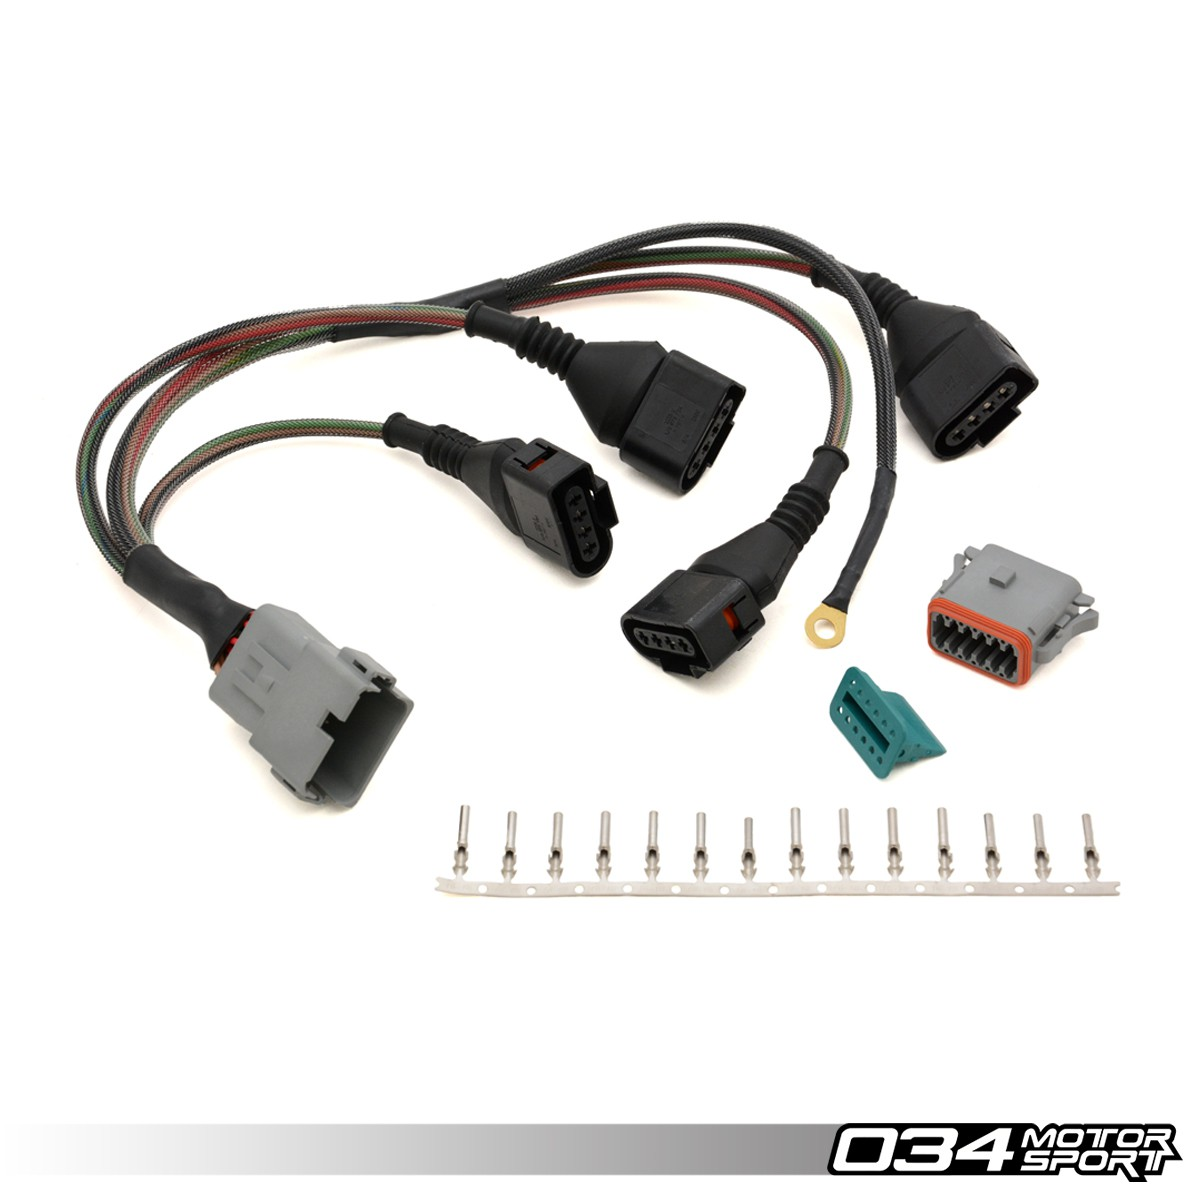 repair update harness audi volkswagen 1 8t with 4 wire coils 034 rh store 034motorsport com BMW Wiring Harness Connectors BMW Wiring Harness Connectors